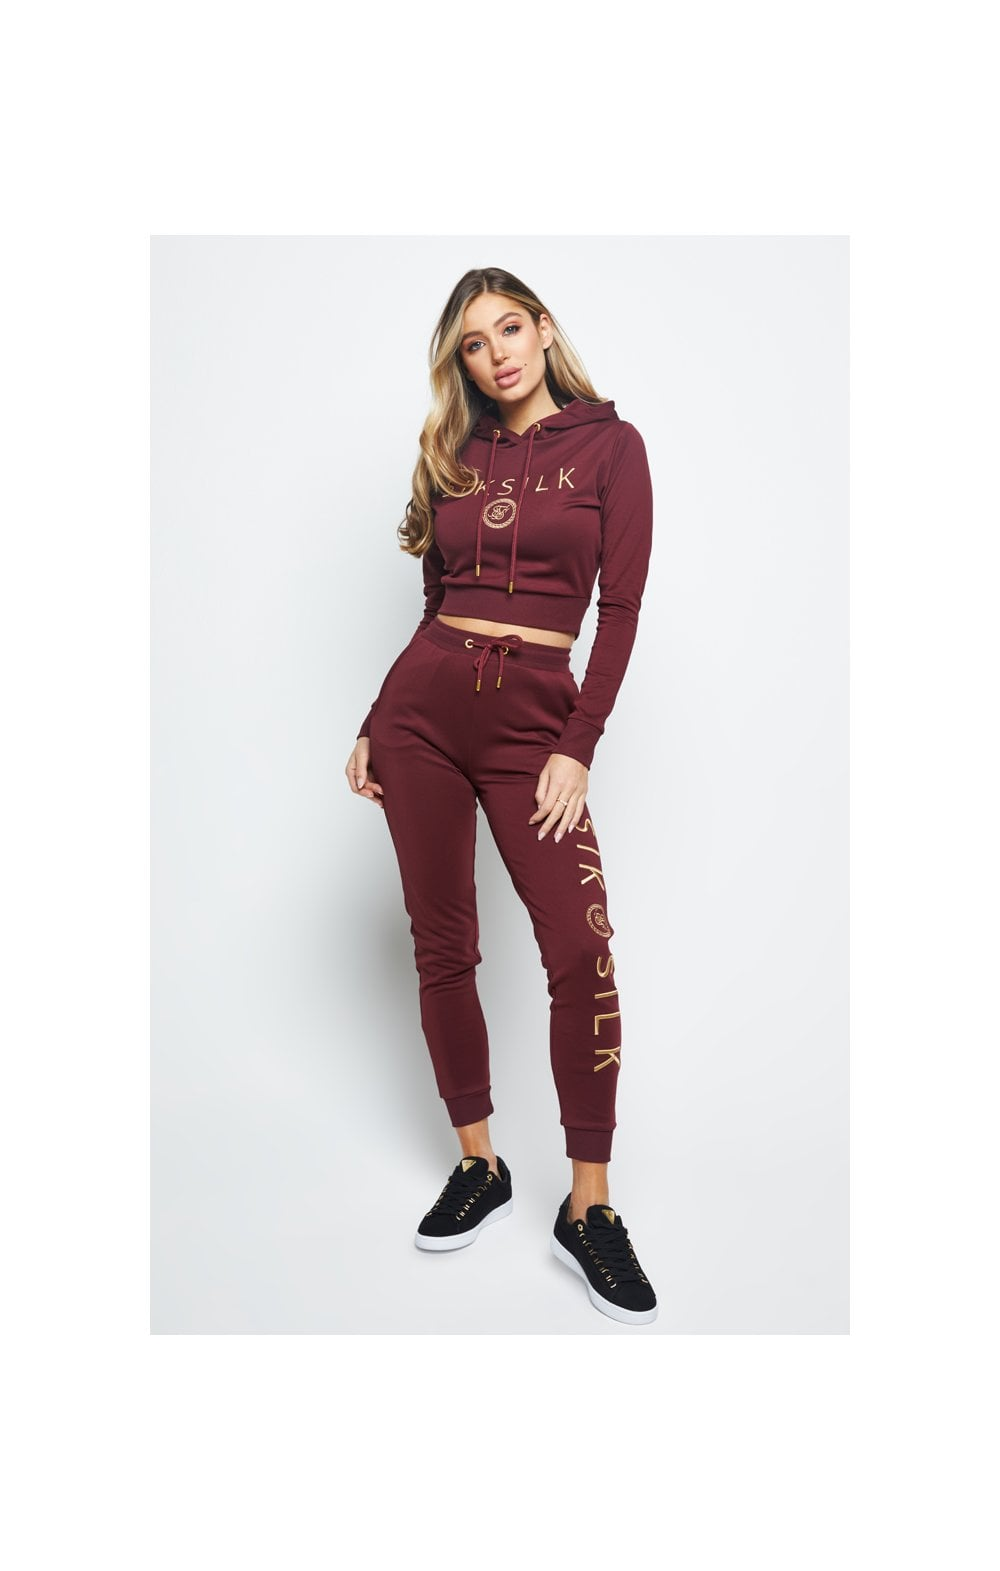 SikSilk Eyelet Mesh Track Top - Burgundy (1)